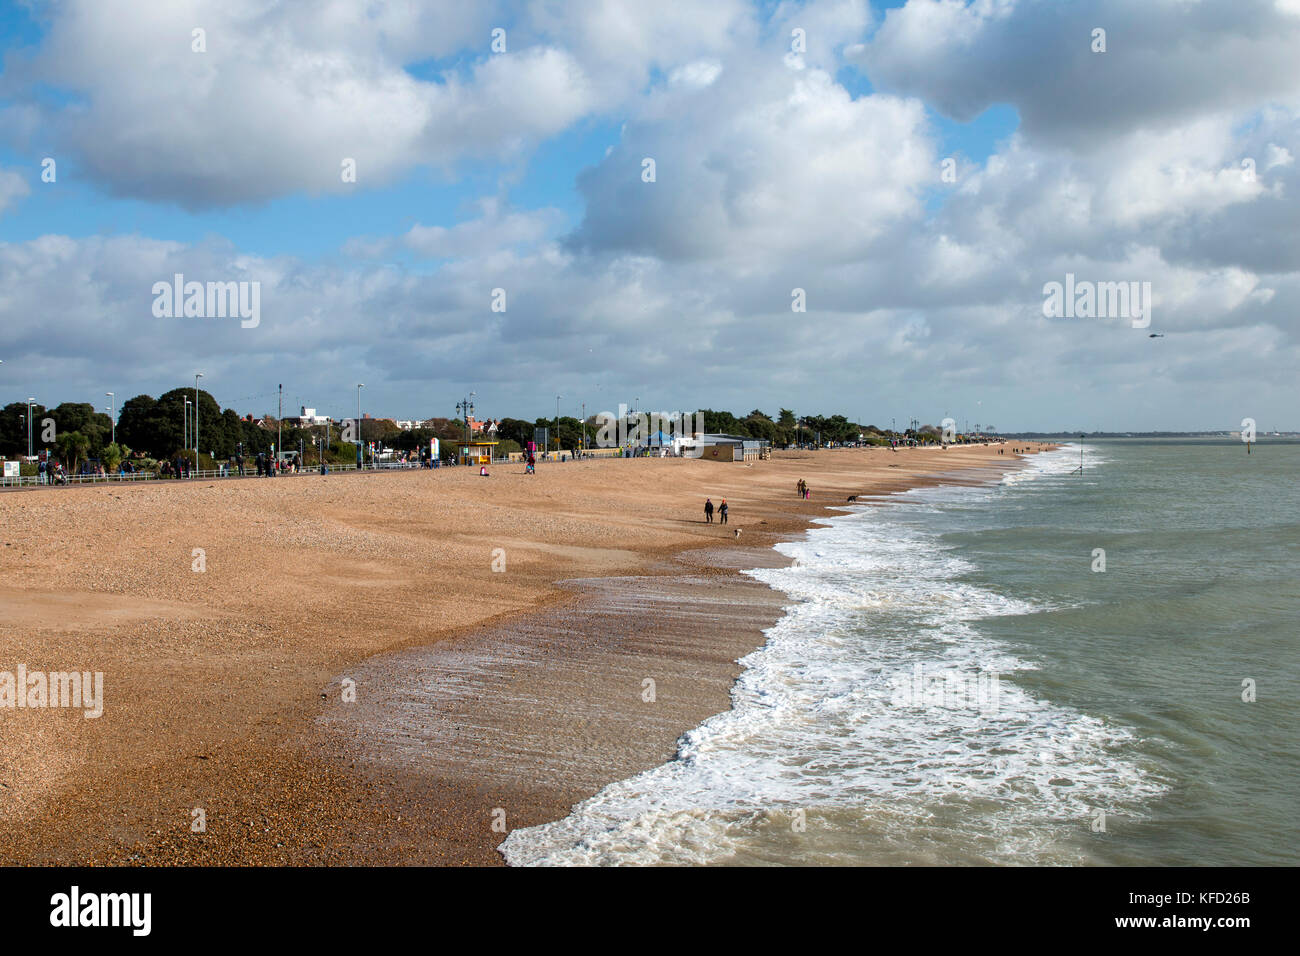 Southsea beach, Portsmouth, Hampshire on October 22 2017. Taken from South Parade Pier Stock Photo